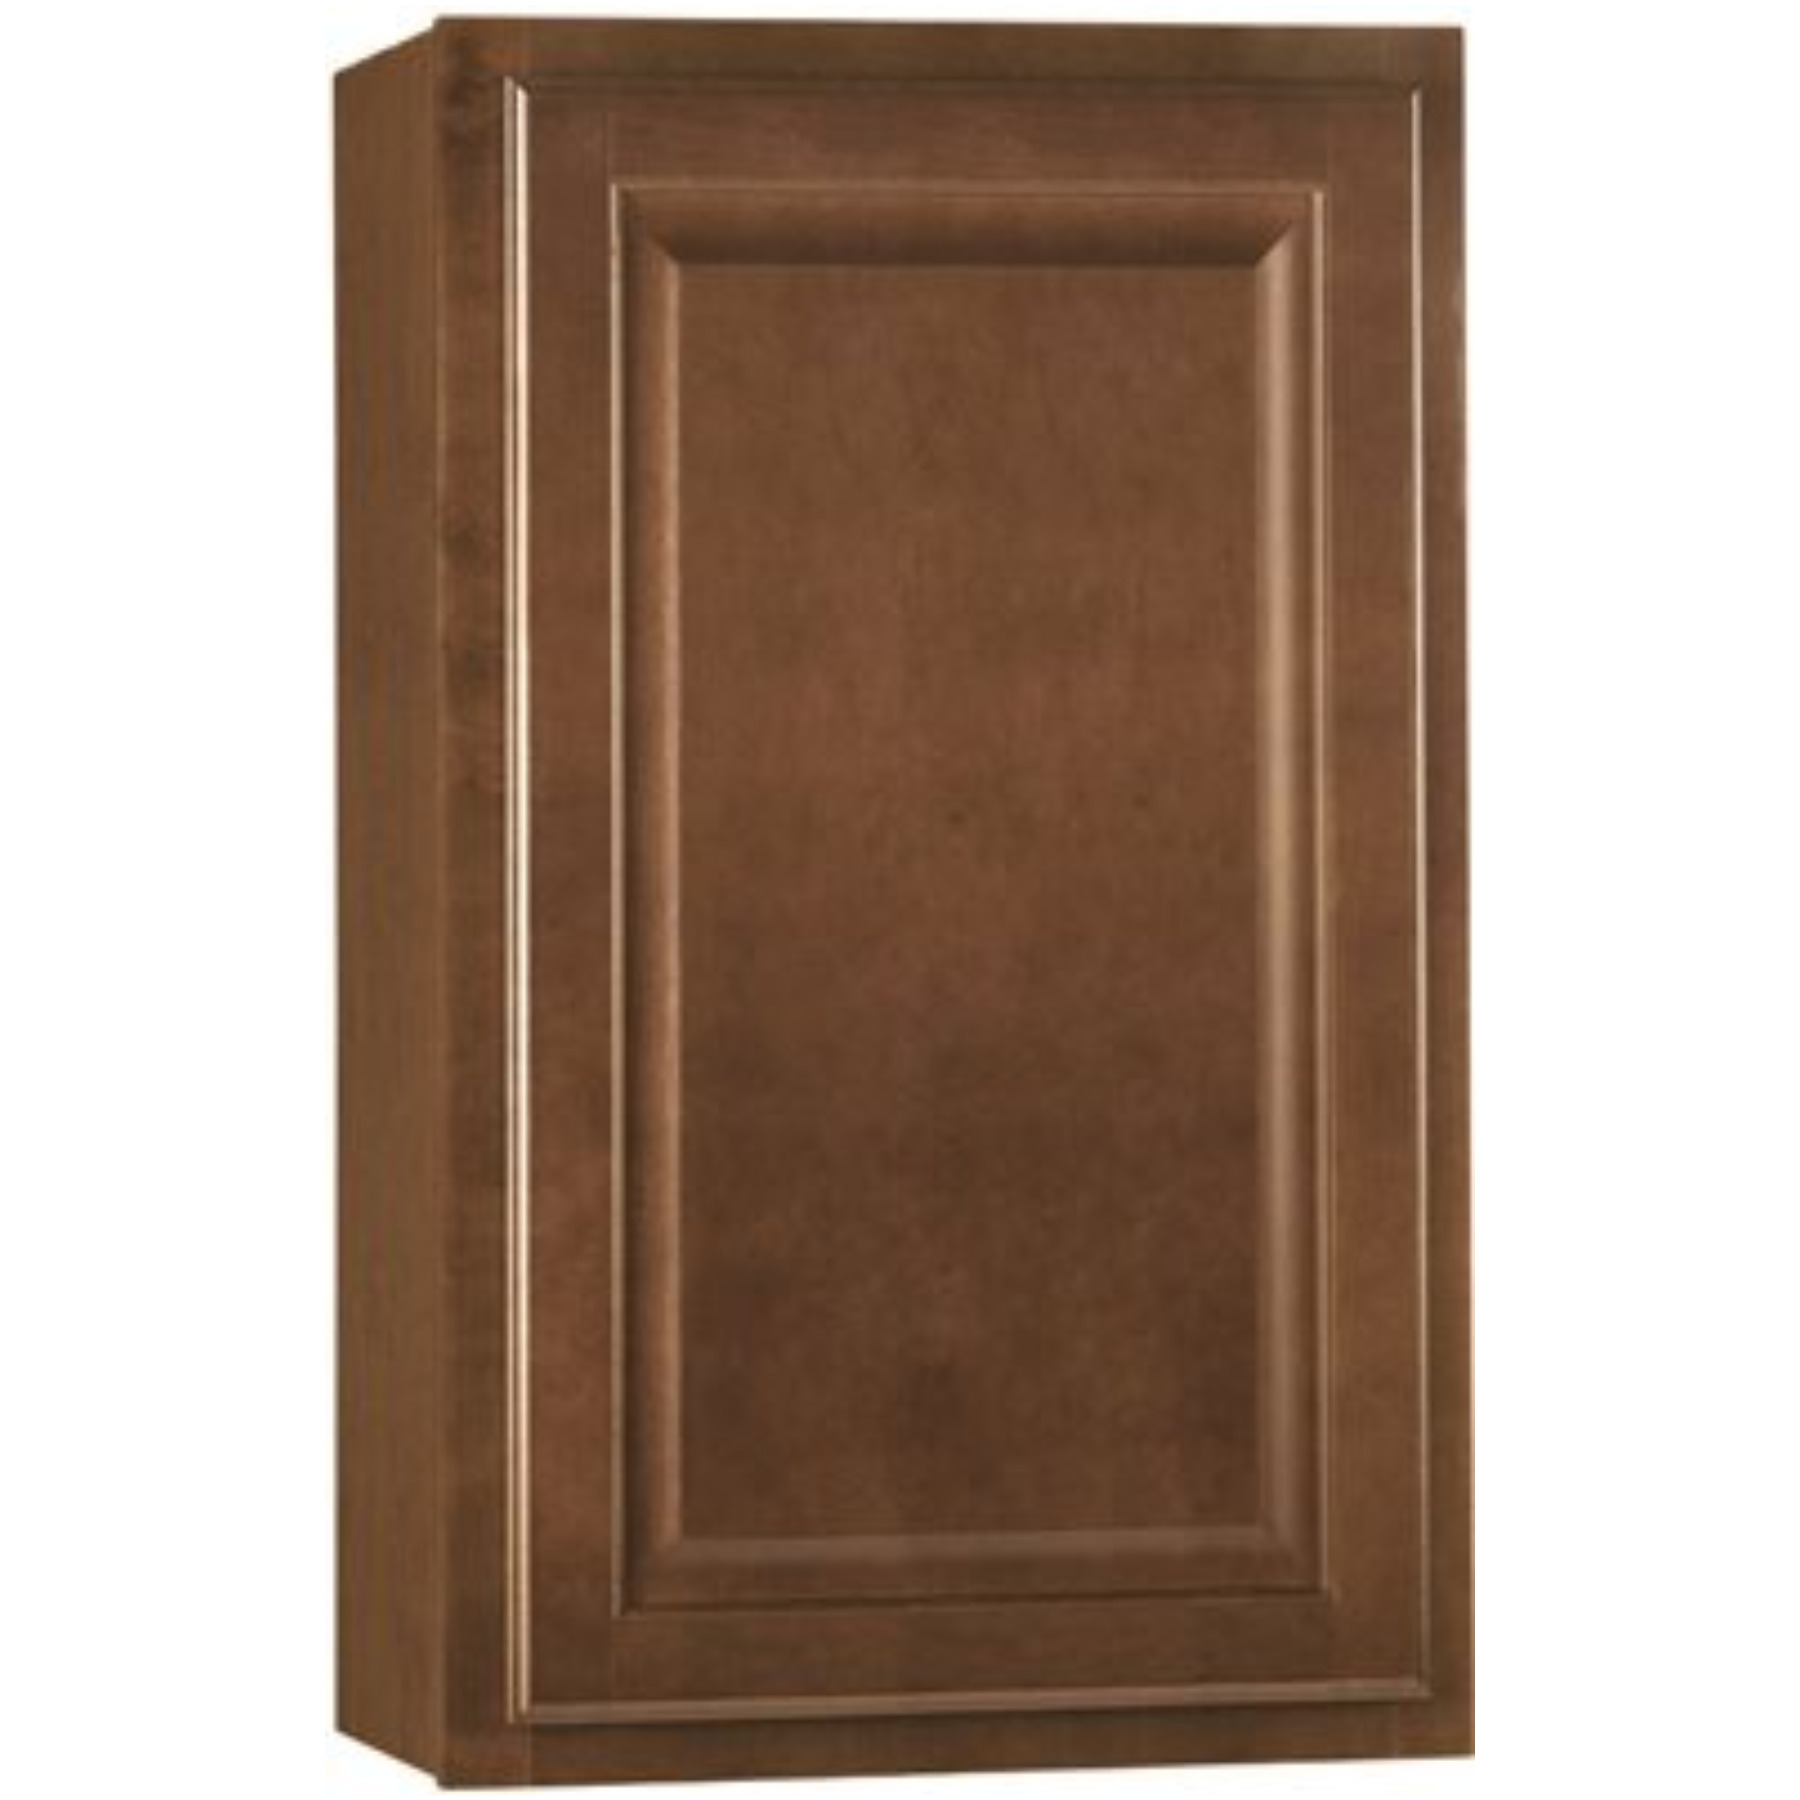 RSI HOME PRODUCTS HAMILTON KITCHEN WALL CABINET, FULLY ASSEMBLED, RAISED PANEL, CAFE, 18X30X12 IN.